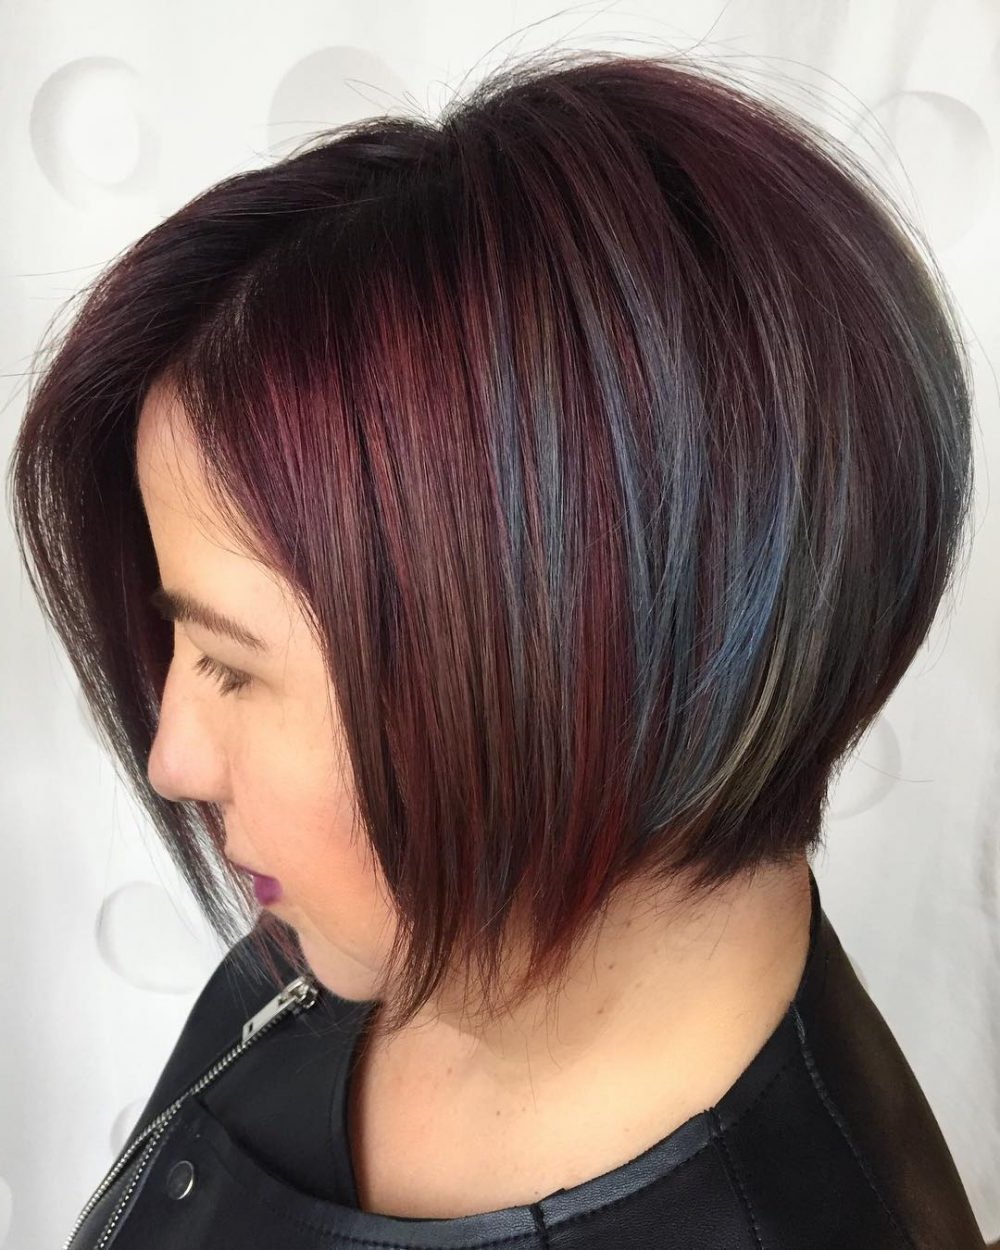 34 Greatest Short Haircuts And Hairstyles For Thick Hair For 2018 Regarding Layered Tapered Pixie Hairstyles For Thick Hair (View 6 of 20)